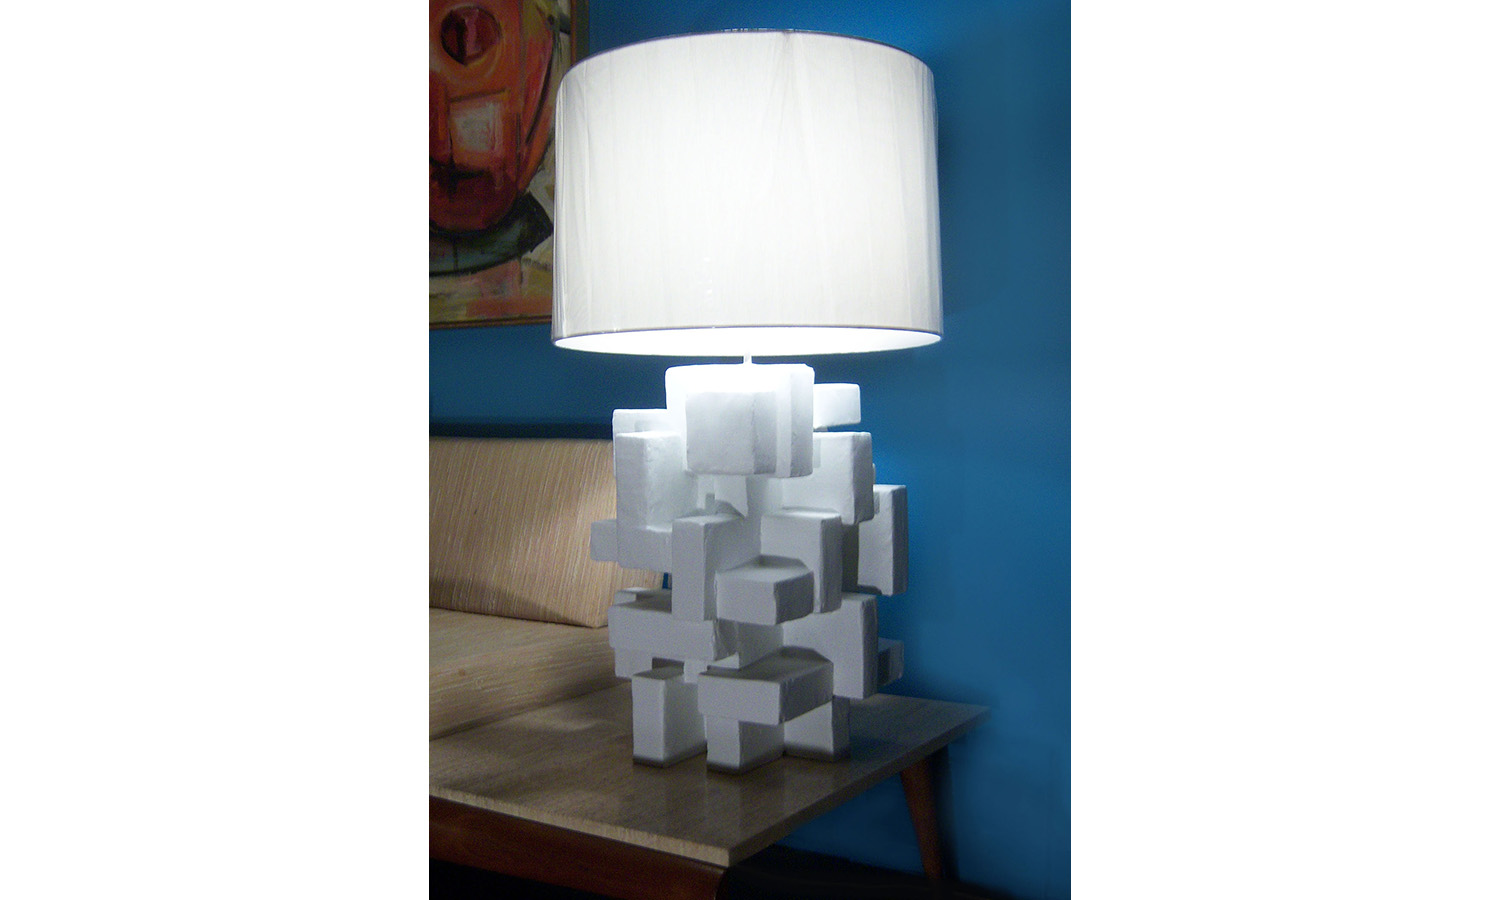 "ABITARE TABLE LAMP III, mixed media, 20"" x 13"" x 13"", 2013"